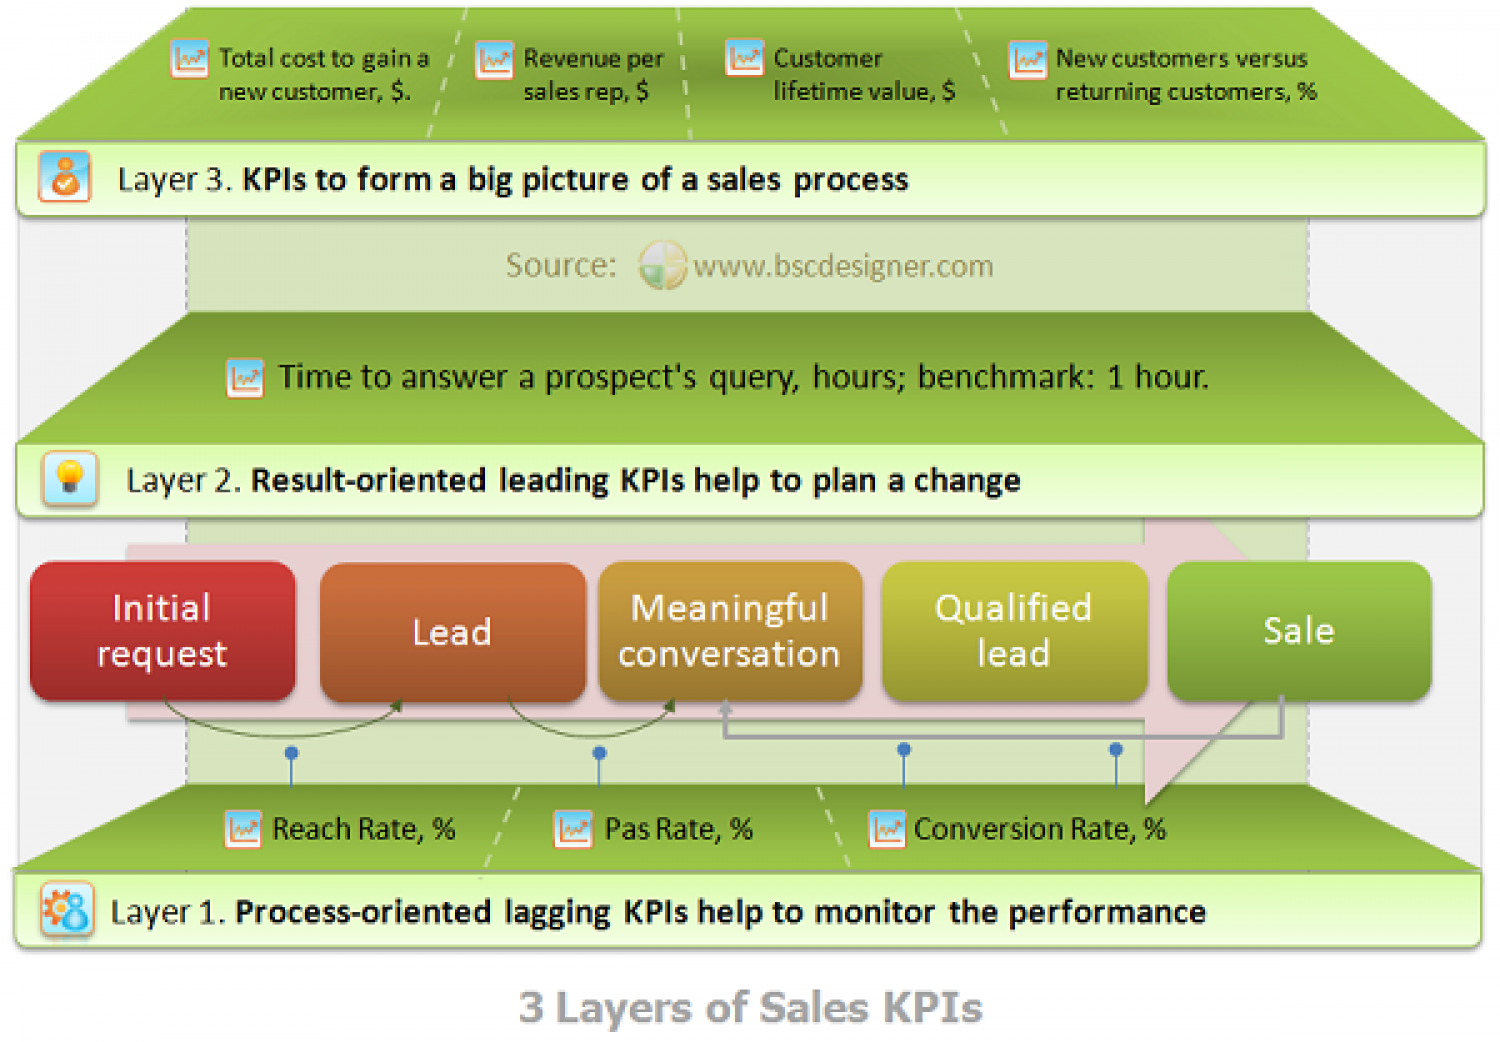 3 Layers of Sales KPIs Infographic